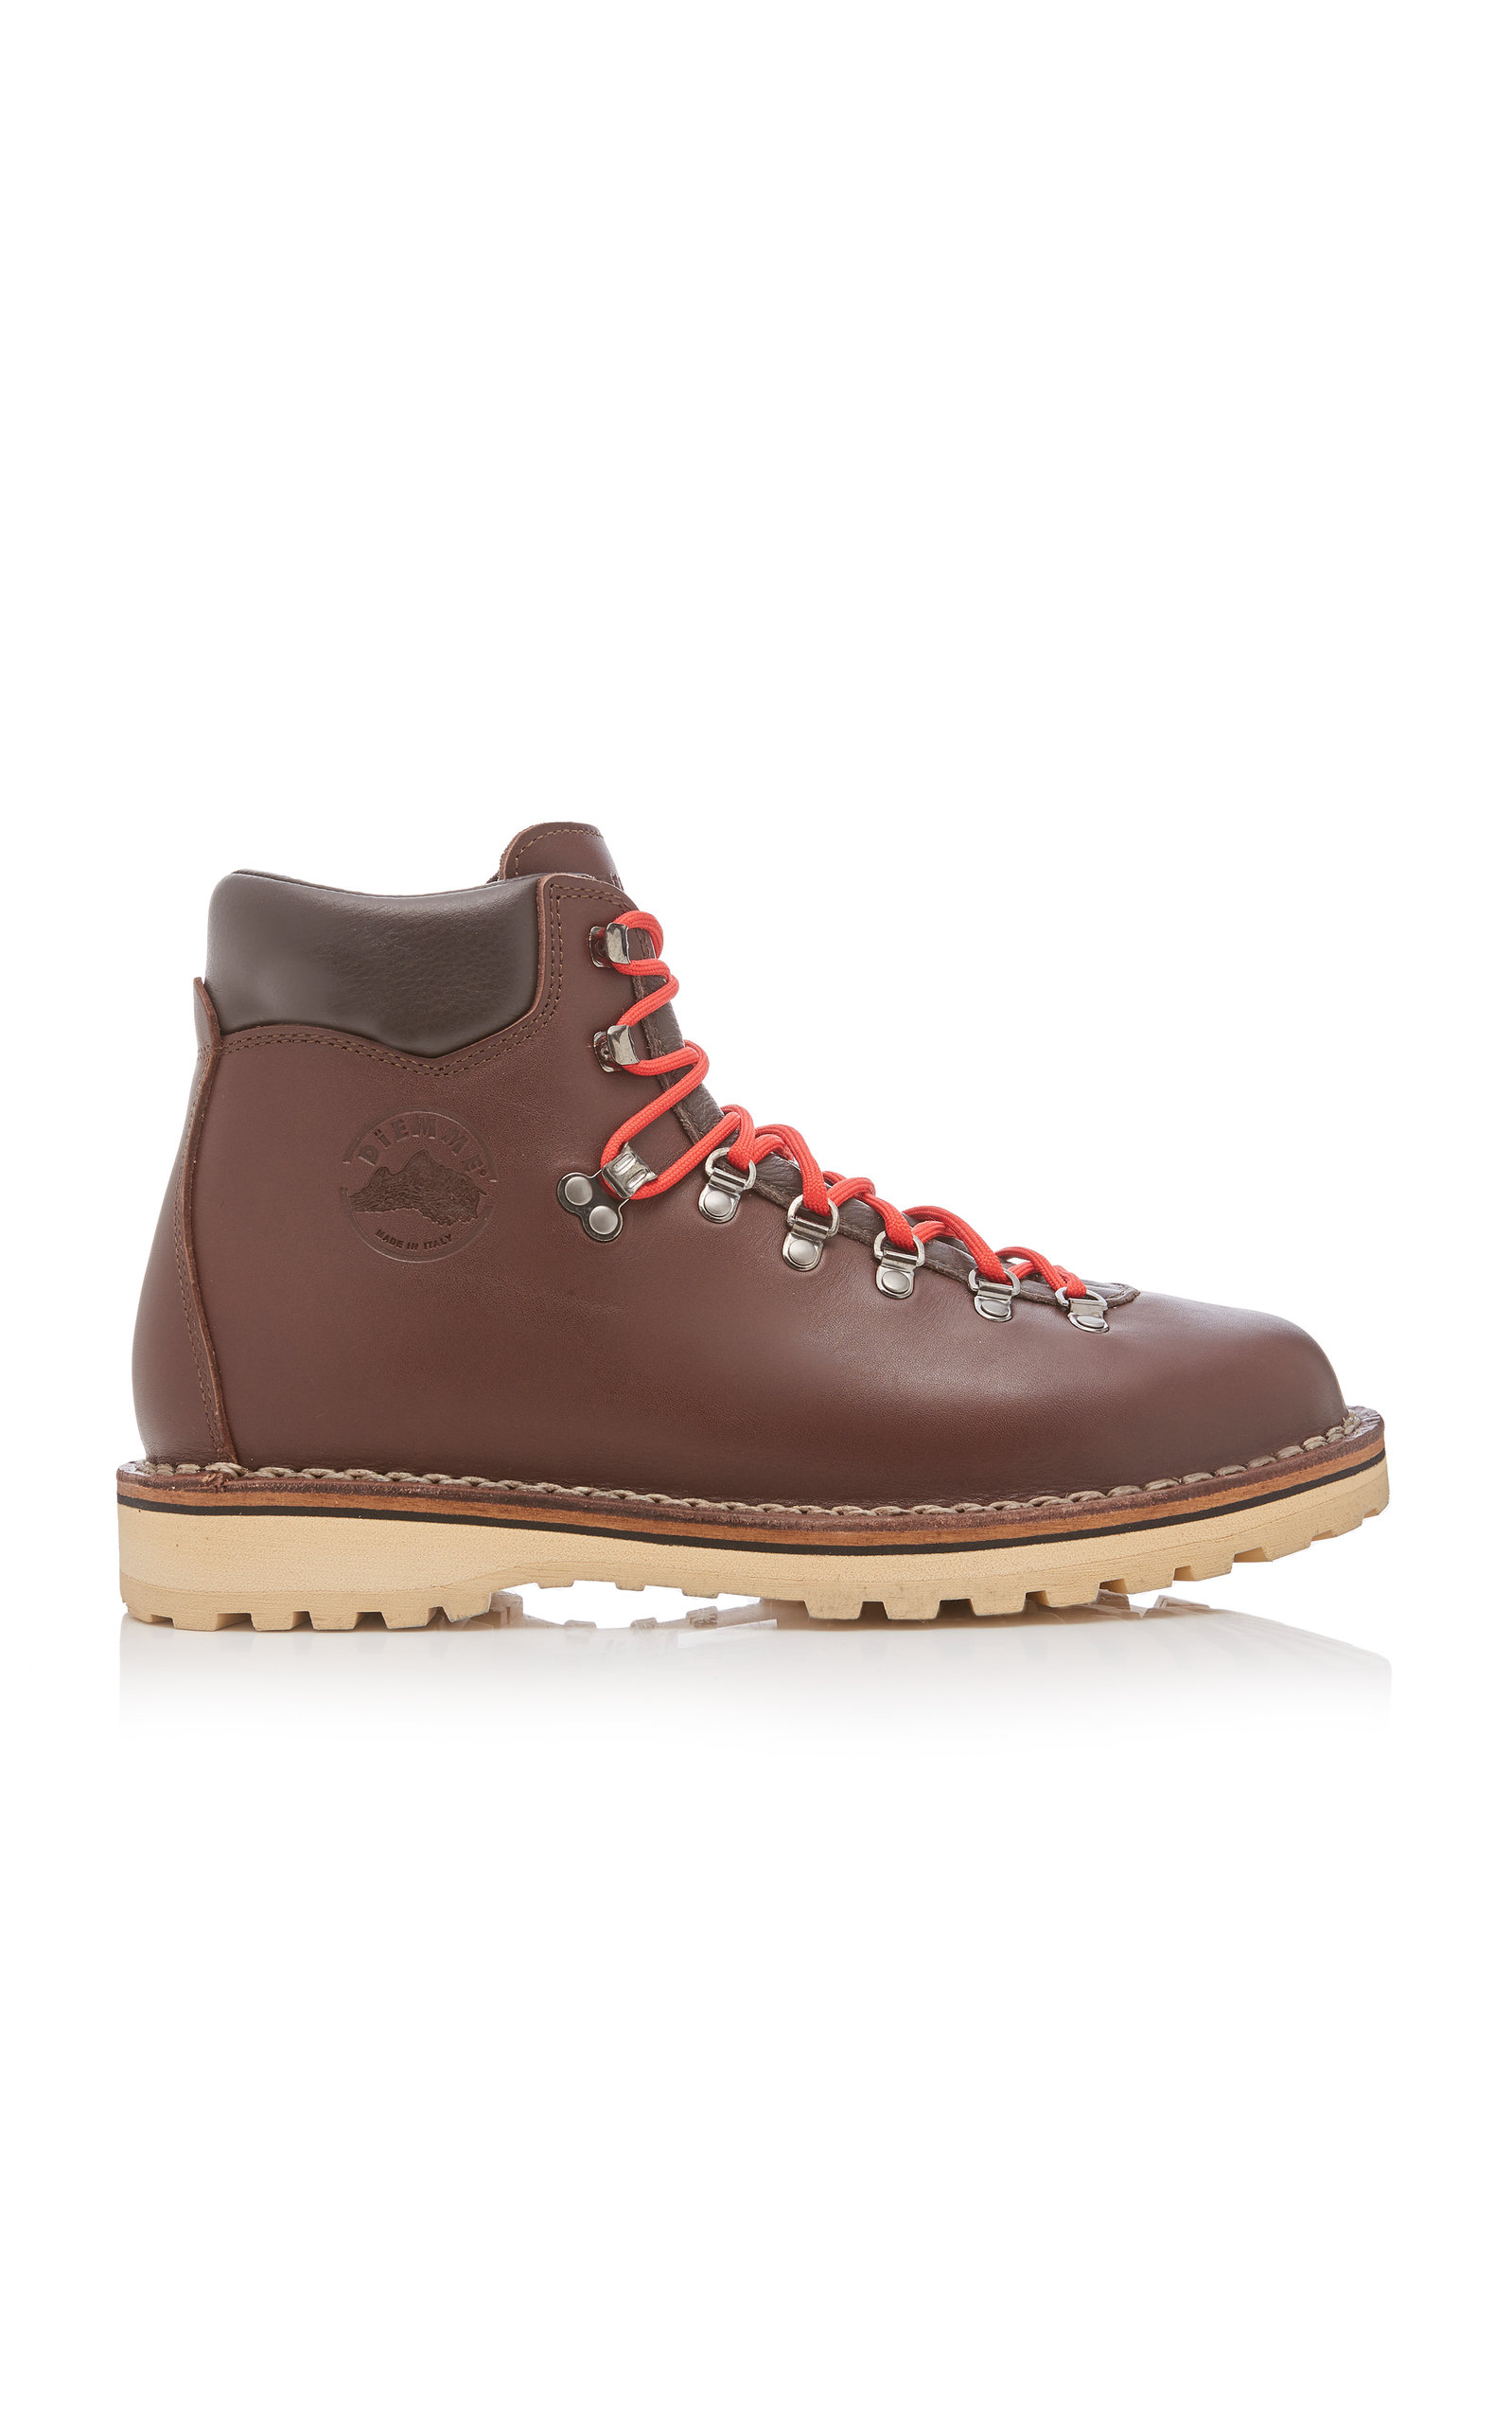 Diemme Boots ROCCIA BROWN LEATHER HIKING BOOTS